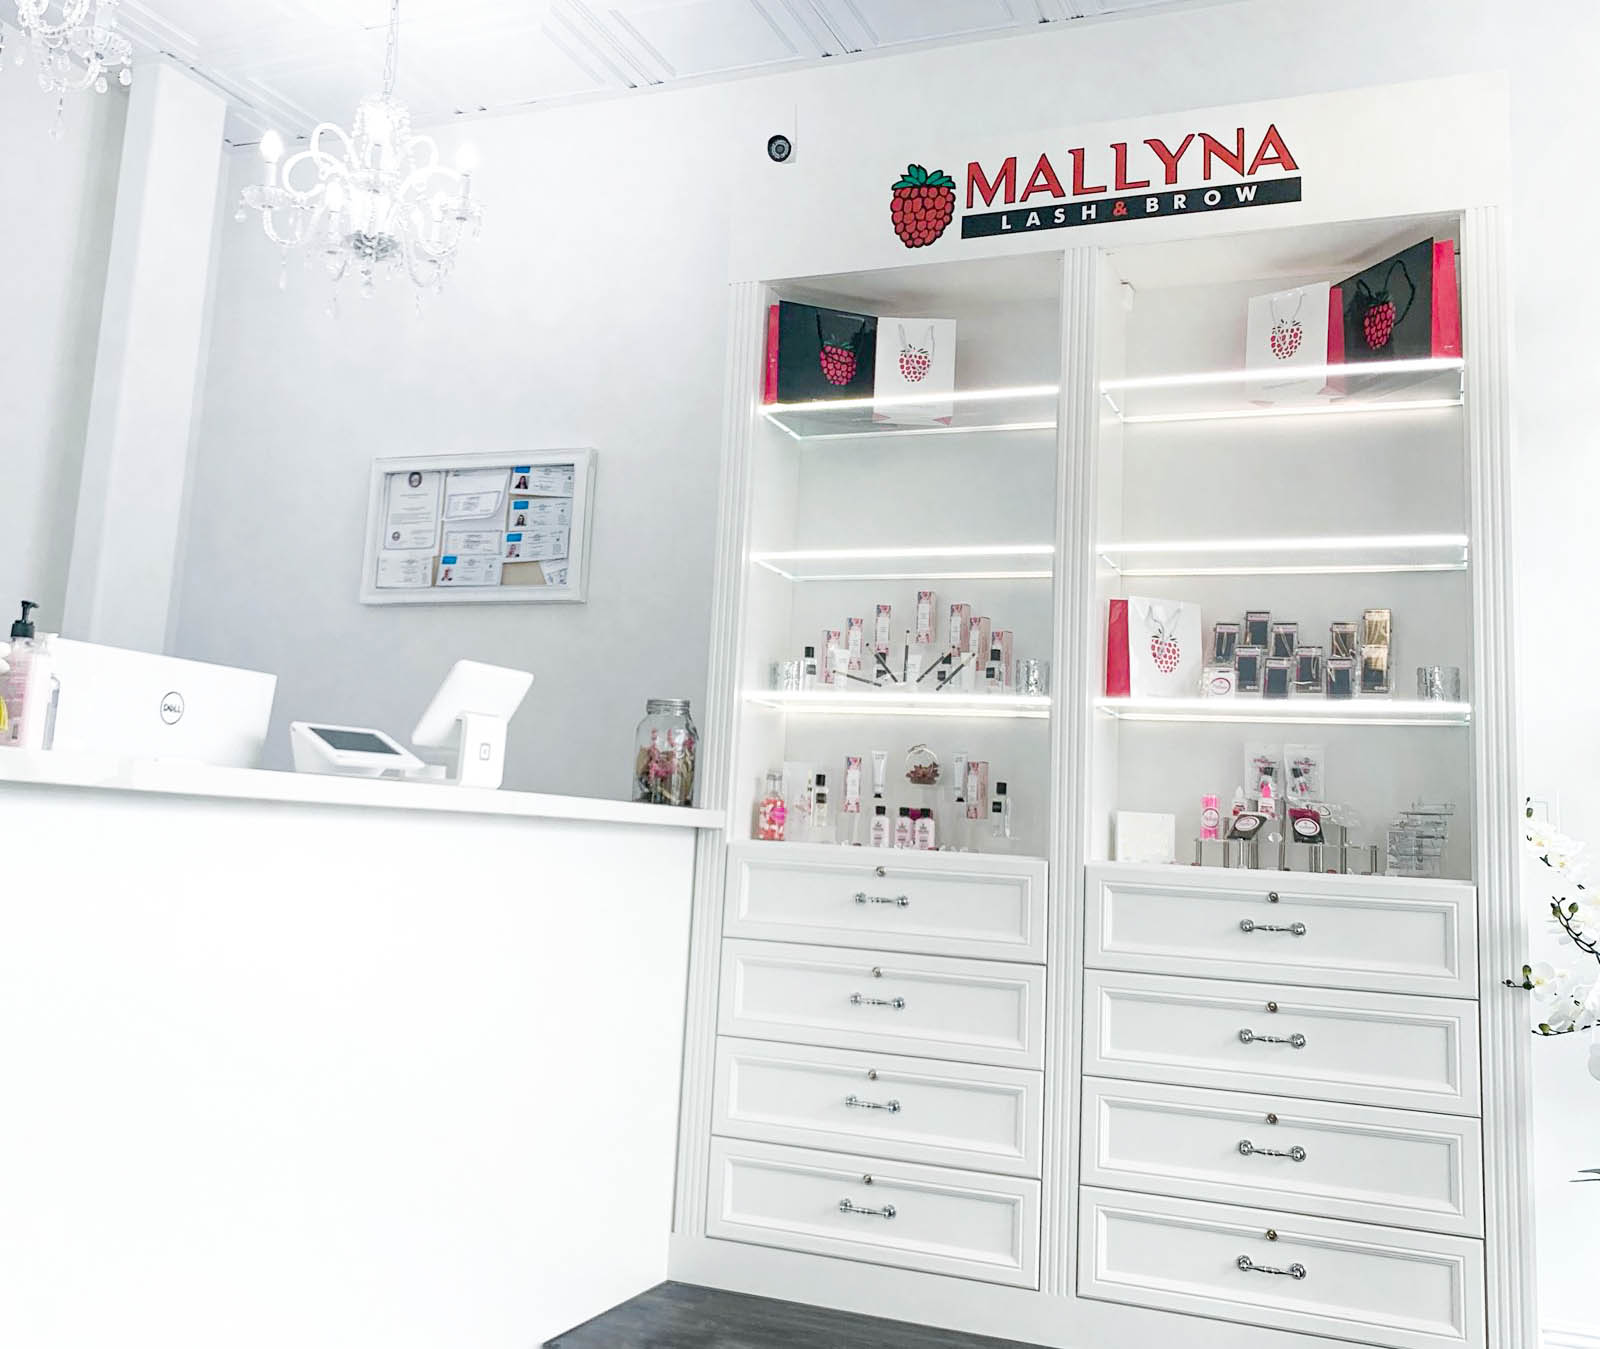 Mallyna Lash & Brow Lounge Henderson